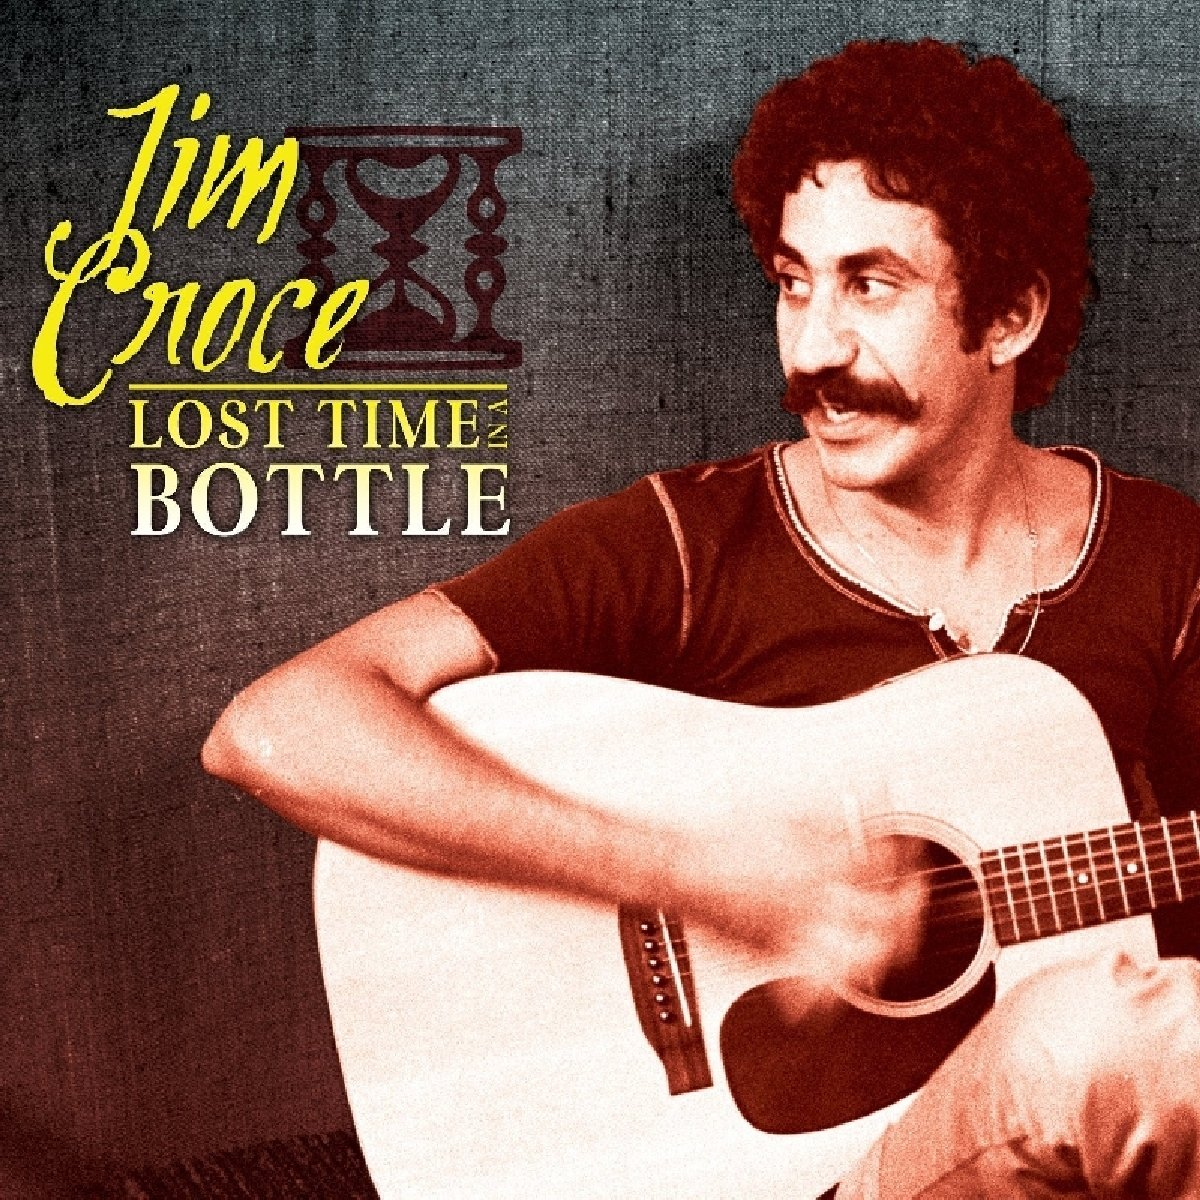 Jim Croce - Lost Time In A Bottle - Amazon.com Music